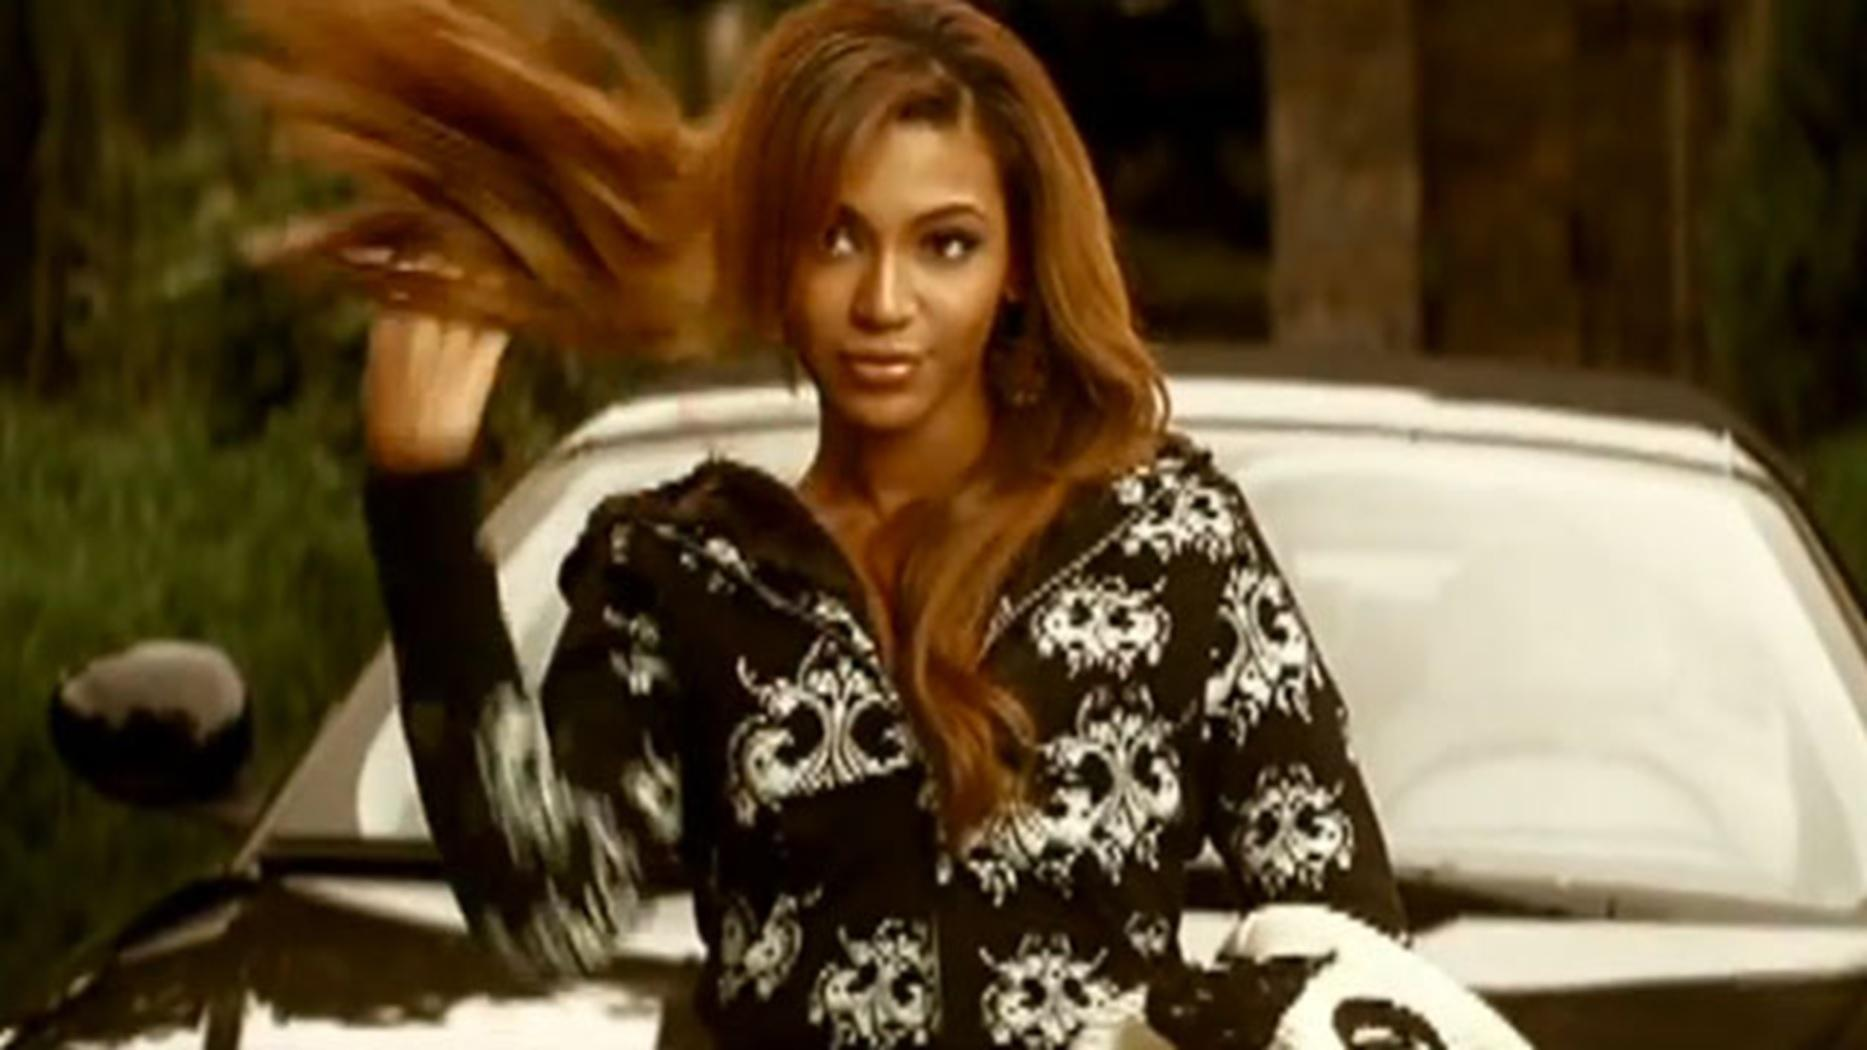 beyonce-irreplaceable-video-1533855677650-1533855679546.jpg